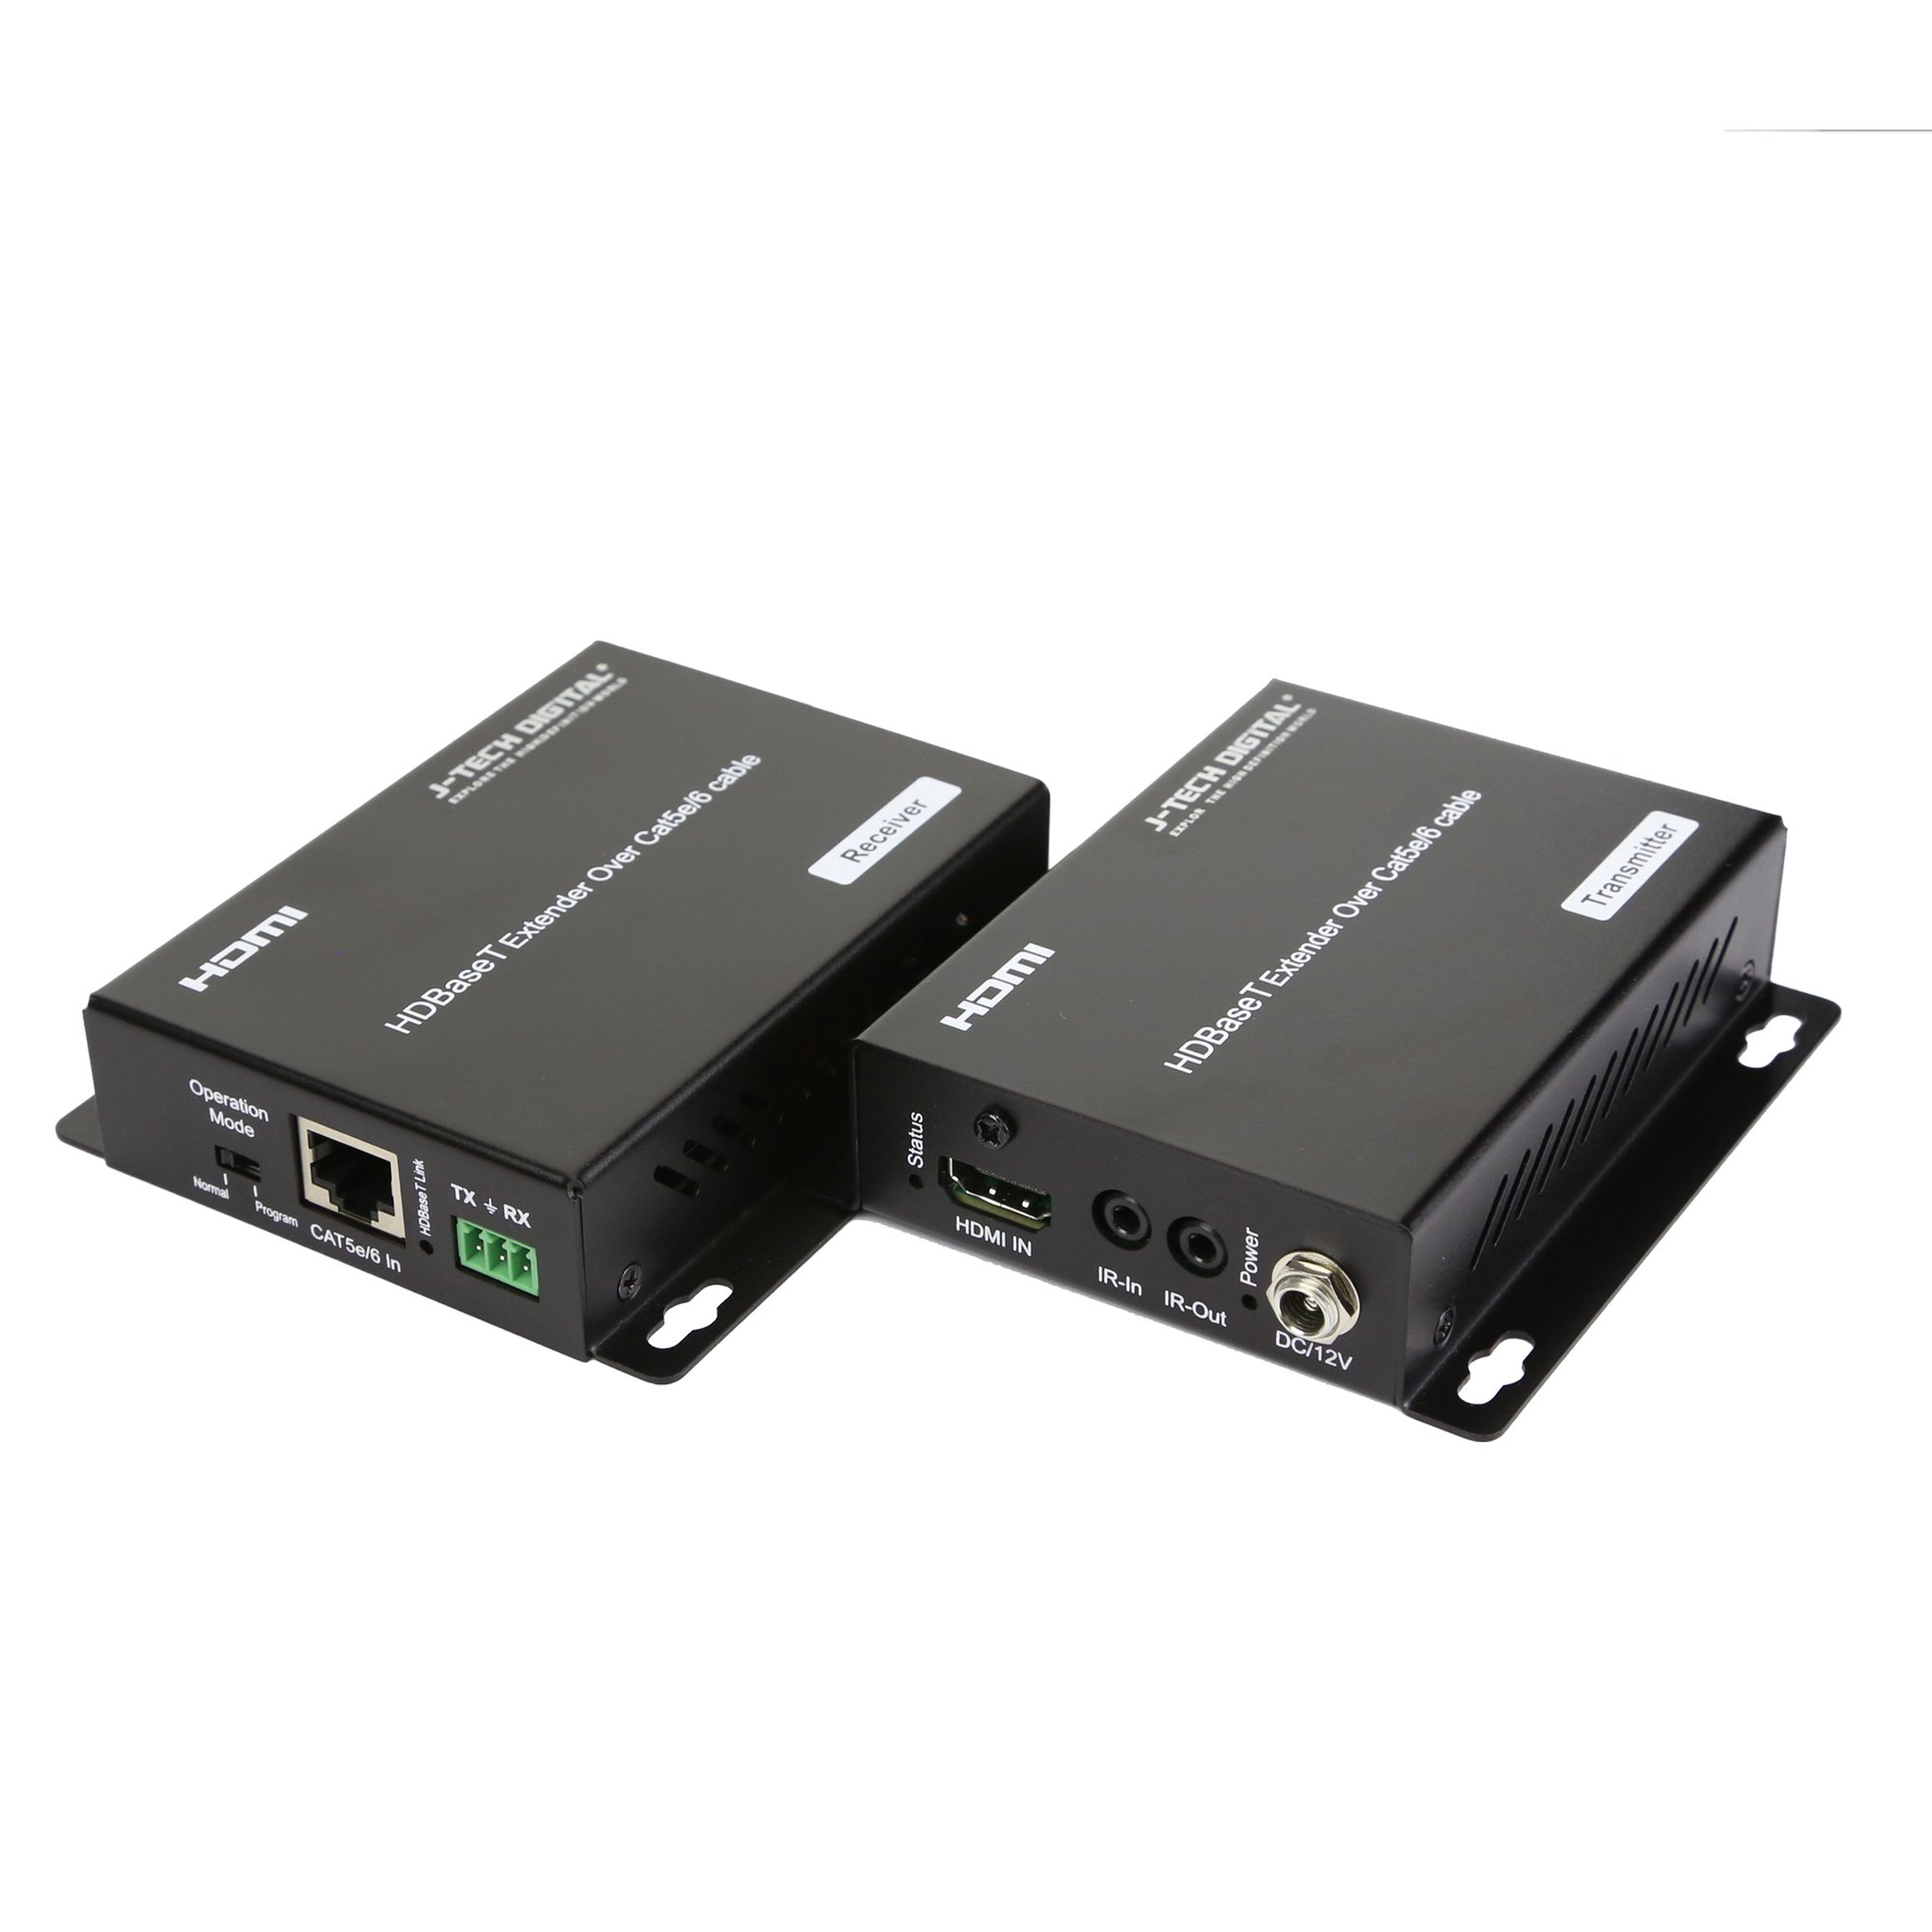 J-Tech Digital HDBaseT HDMI Extender 4K Ultra HD Extender for HDMI 2.0 over Single Cable CAT5e/6A up to 230ft (1080P) 130ft(4K) Supports HDCP 2.2 / 1.4, RS232, Bi-directional IR and PoE